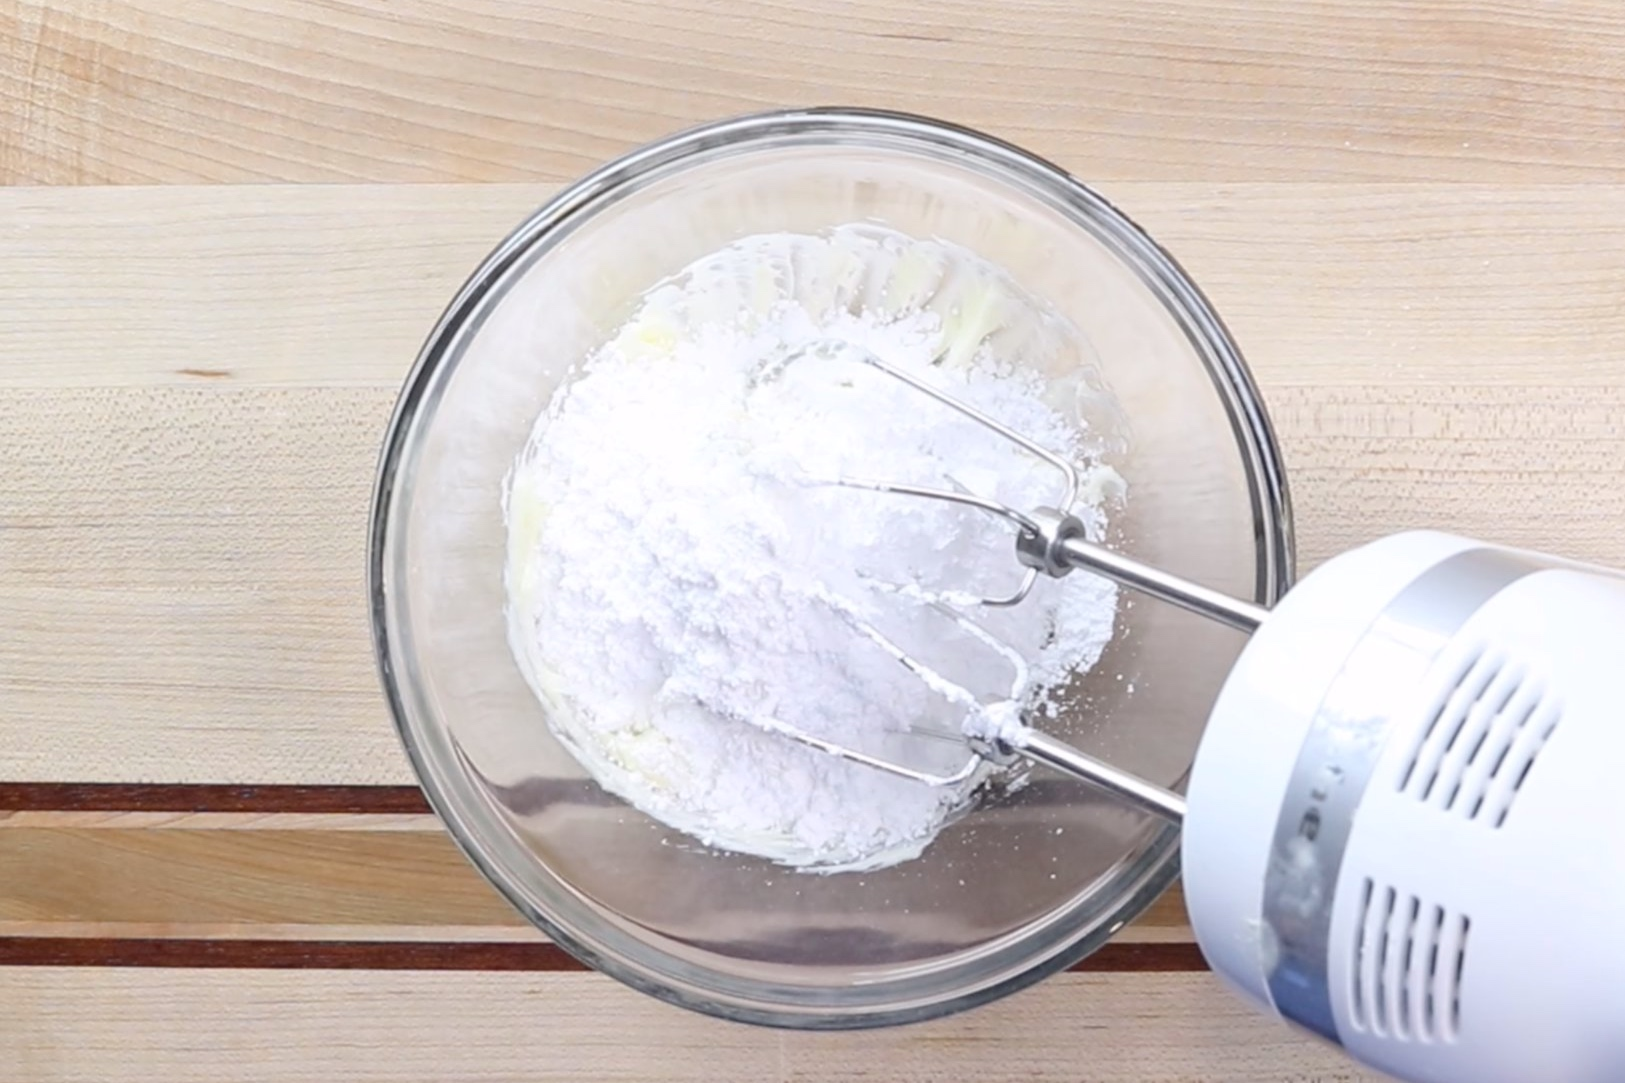 7. In a medium bowl, beat the butter until smooth and creamy.Add the powdered sugar and continue mixing, scraping down the sides when necessary. Mixture will be dry and crumbly. -